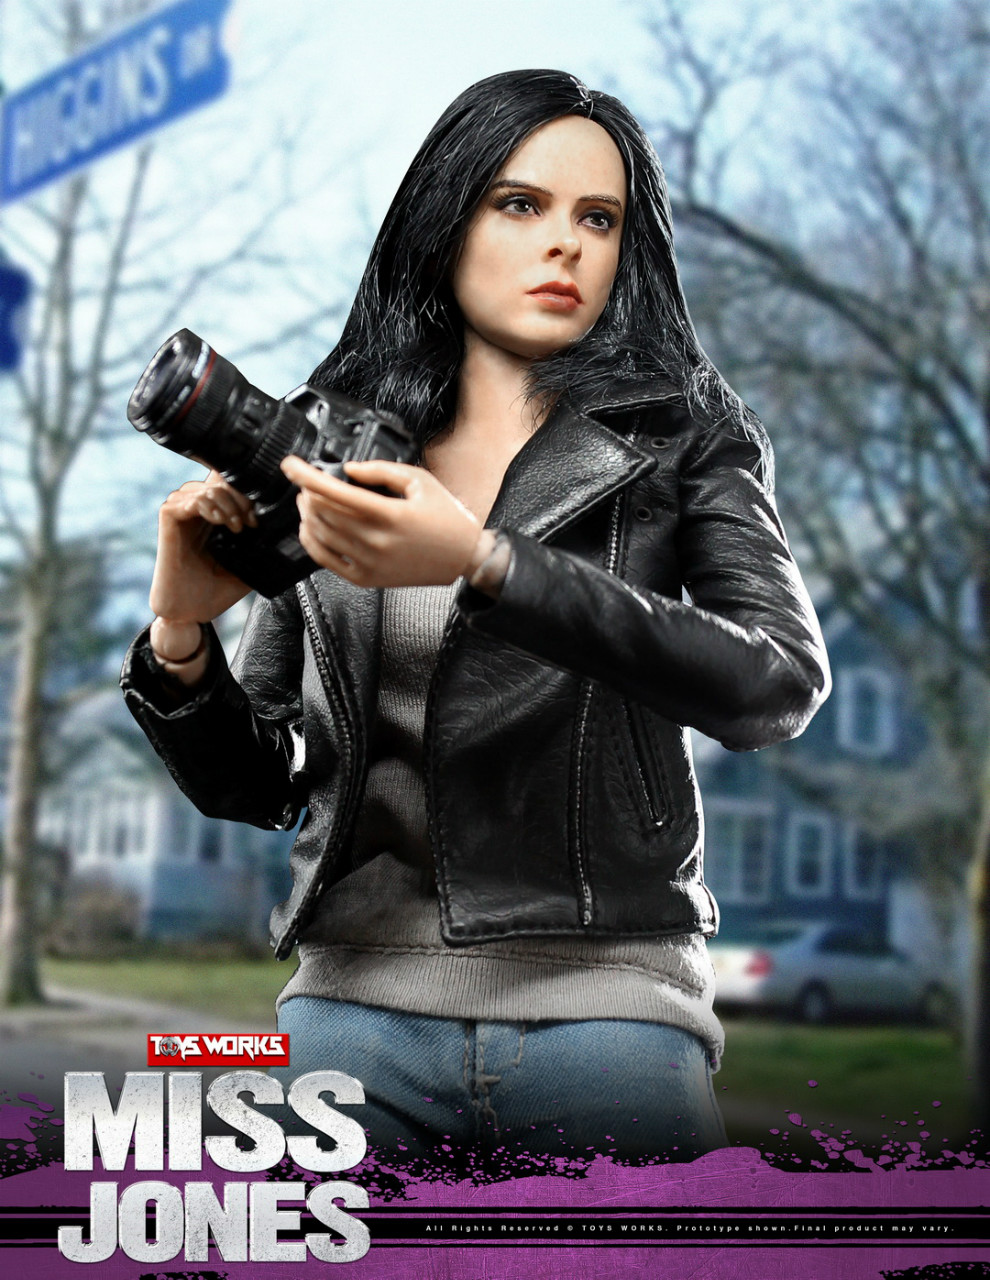 tv - NEW PRODUCT: TOYS WORKS New: 1/6 Miss Jones Miss Jones can move TW007 19163612